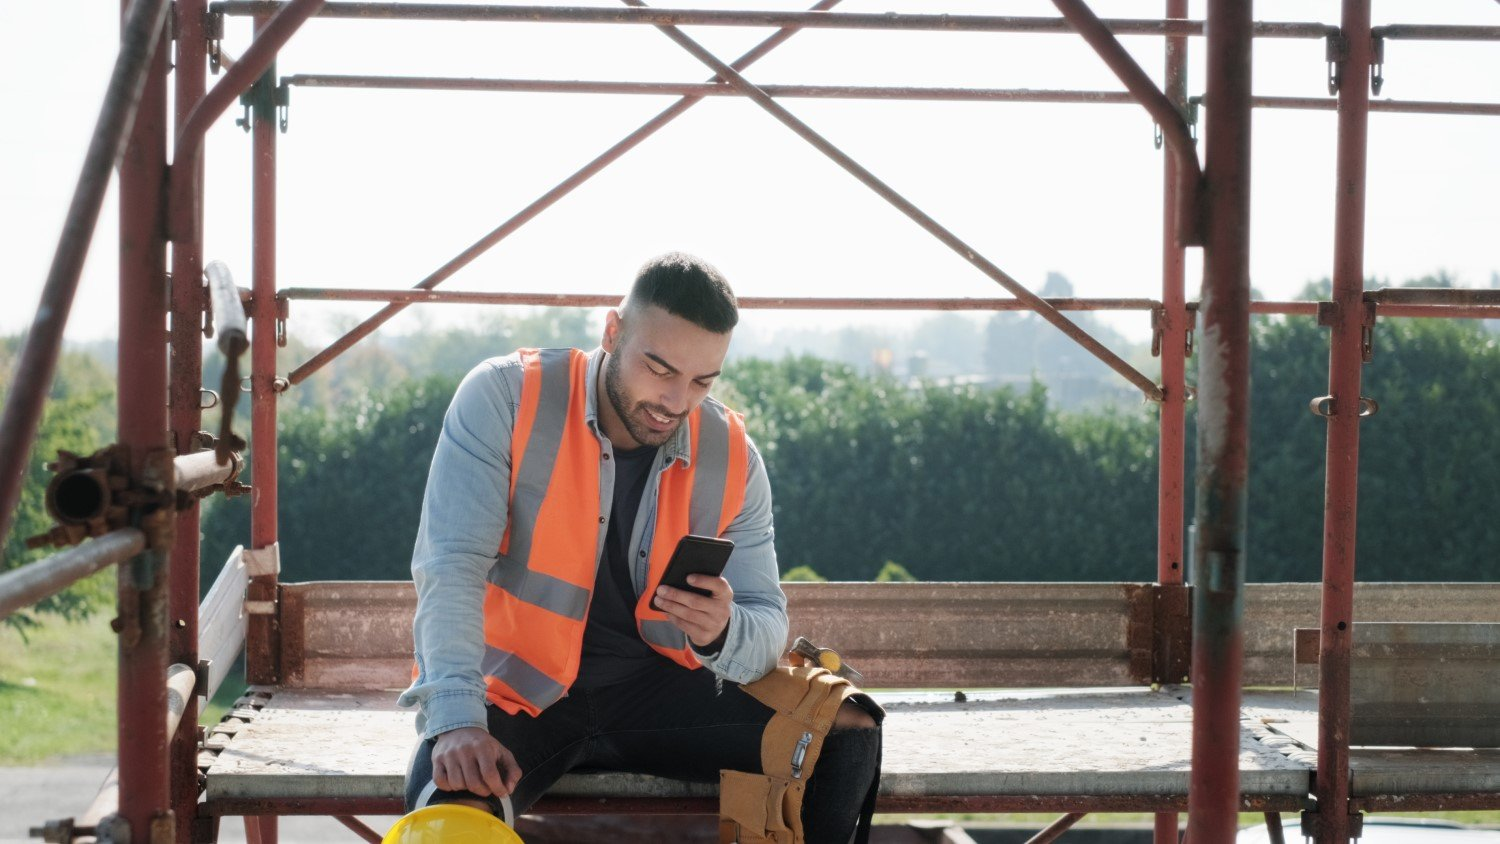 Contractor using Phone